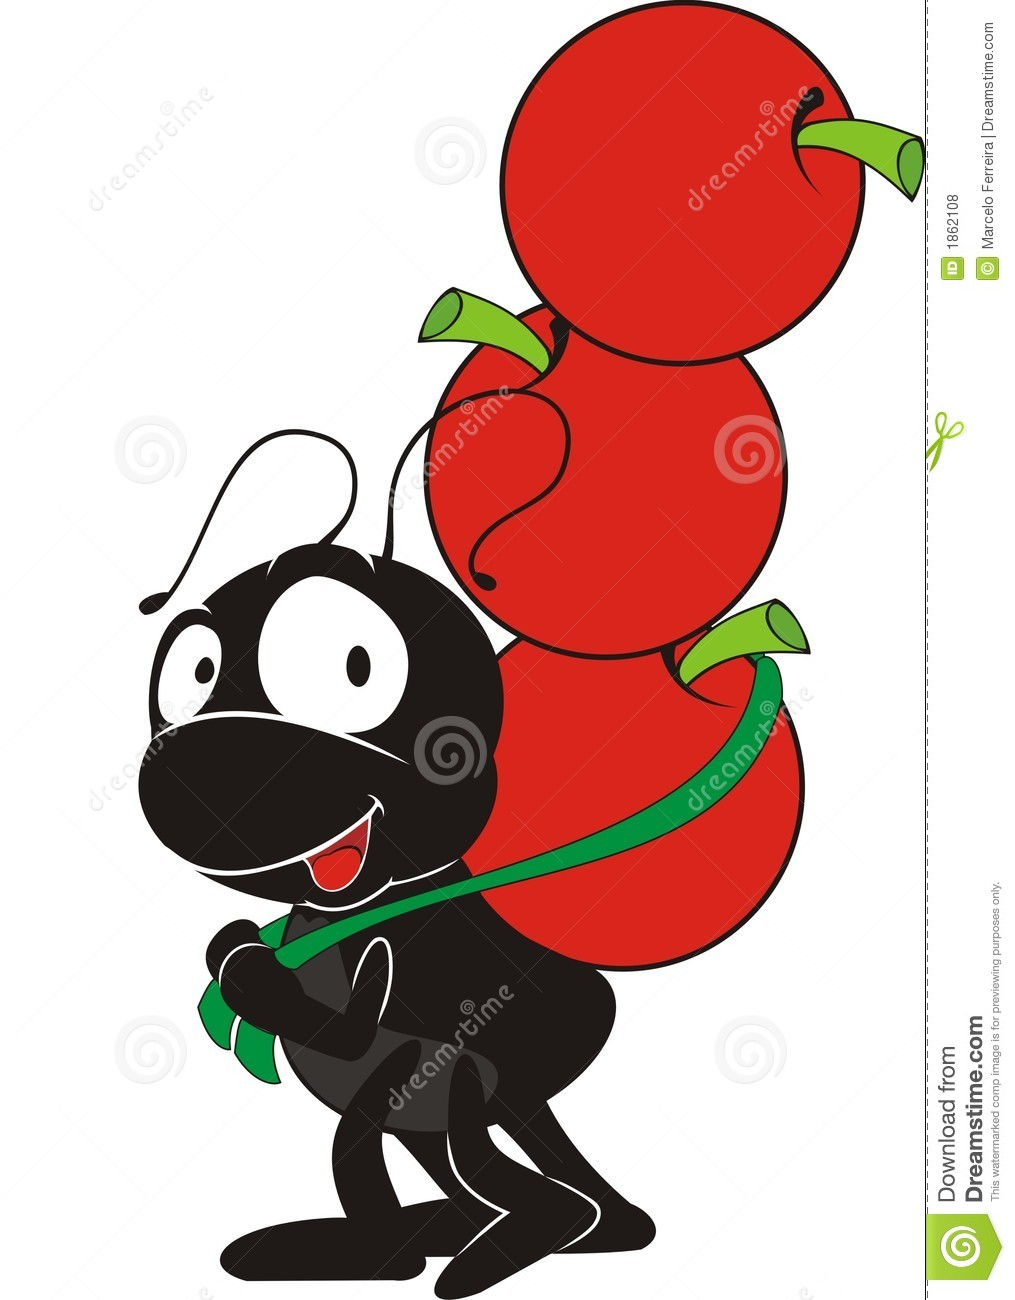 Ants clipart teamwork.  collection of working